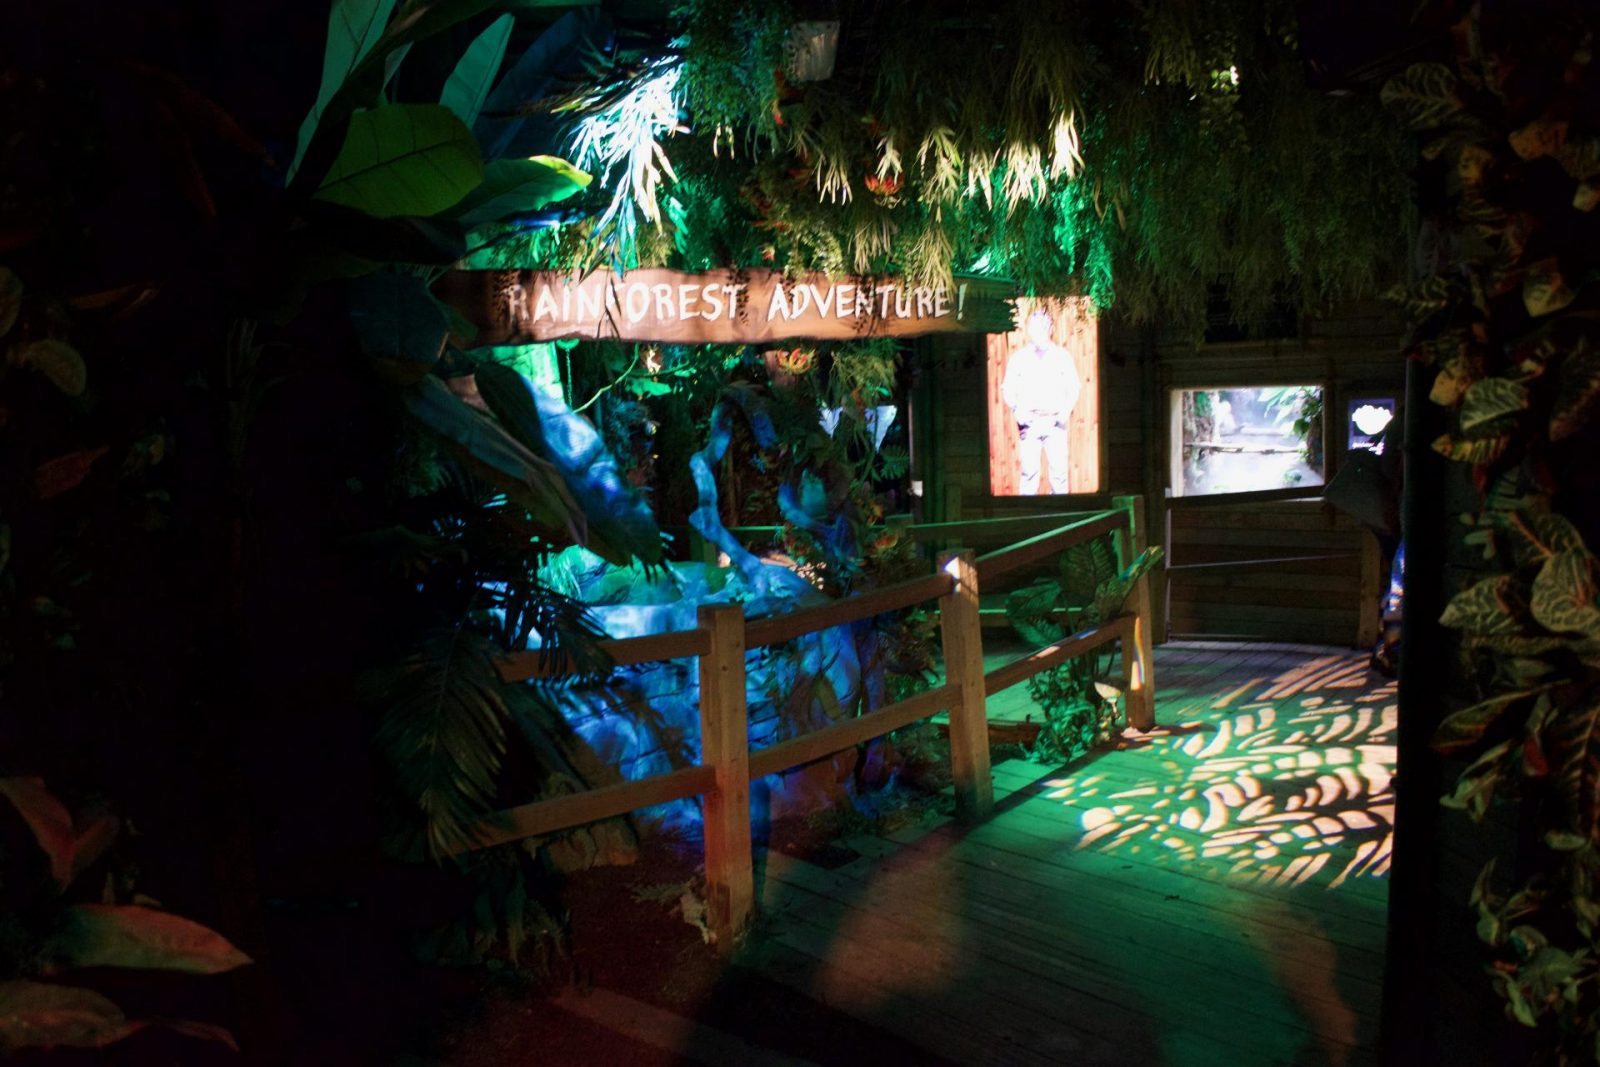 Rainforest adventure in Sea Life London